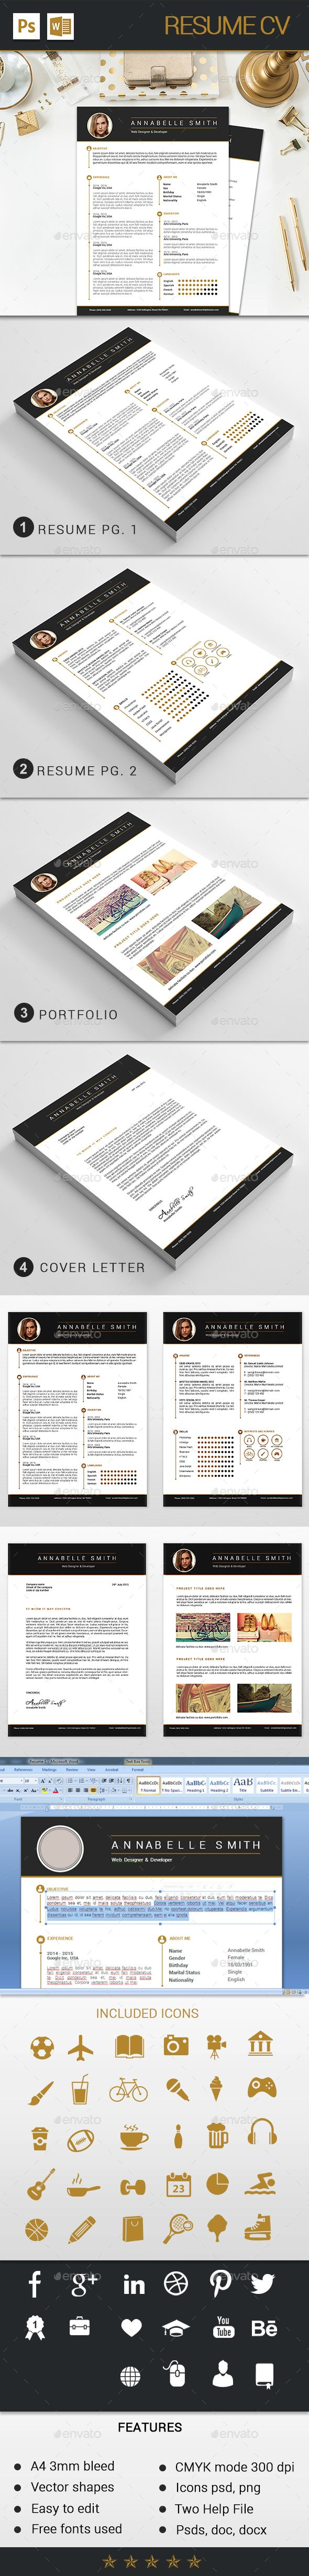 Resume / CV Template PSD. Download here: http://graphicriver.net/item/resume-cv/15234315?ref=ksioks